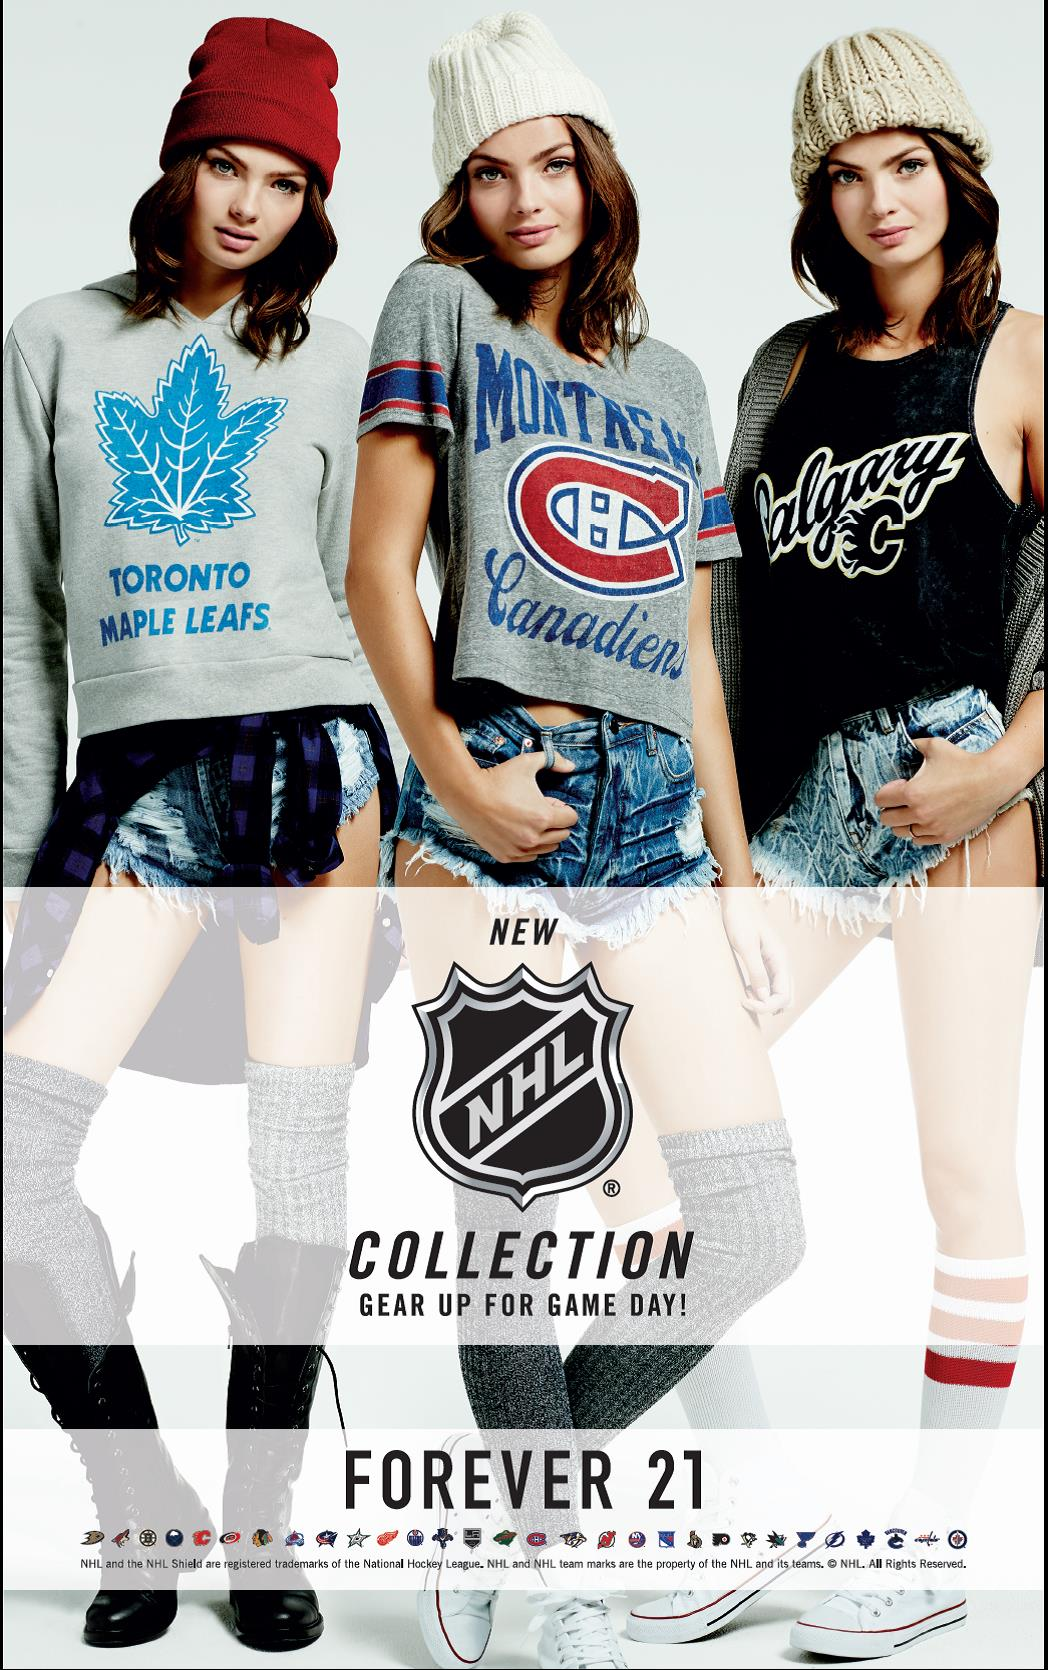 Forever 21 Launches New NHL Hockey Collection